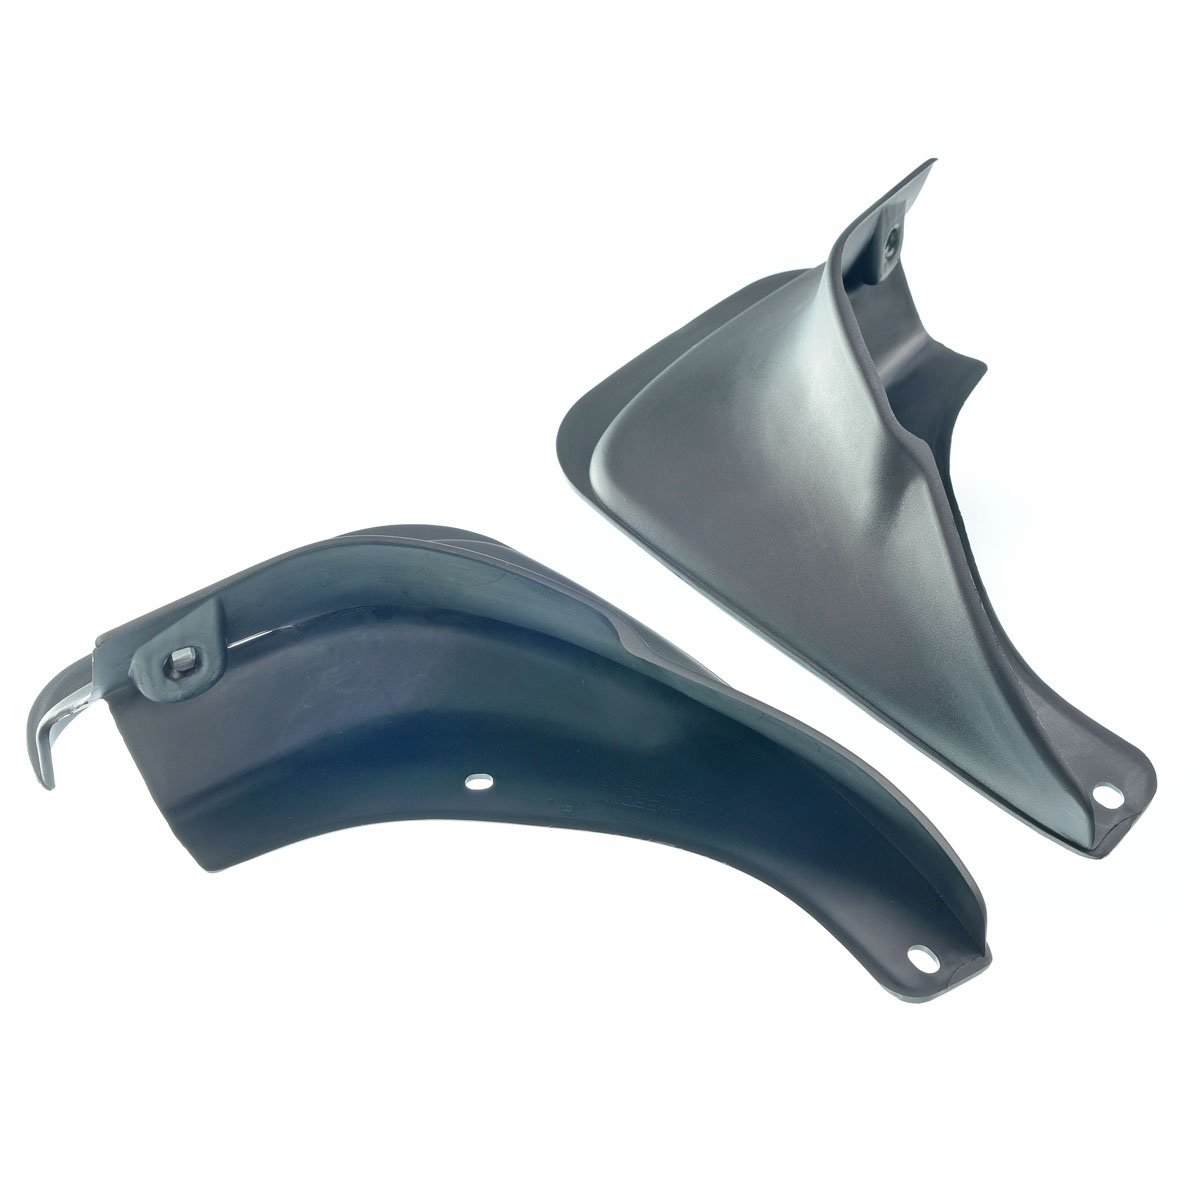 Set of 4 Front and Rear Mud Flaps Splash Guards for Toyota Corolla 1993-1997 Sedan